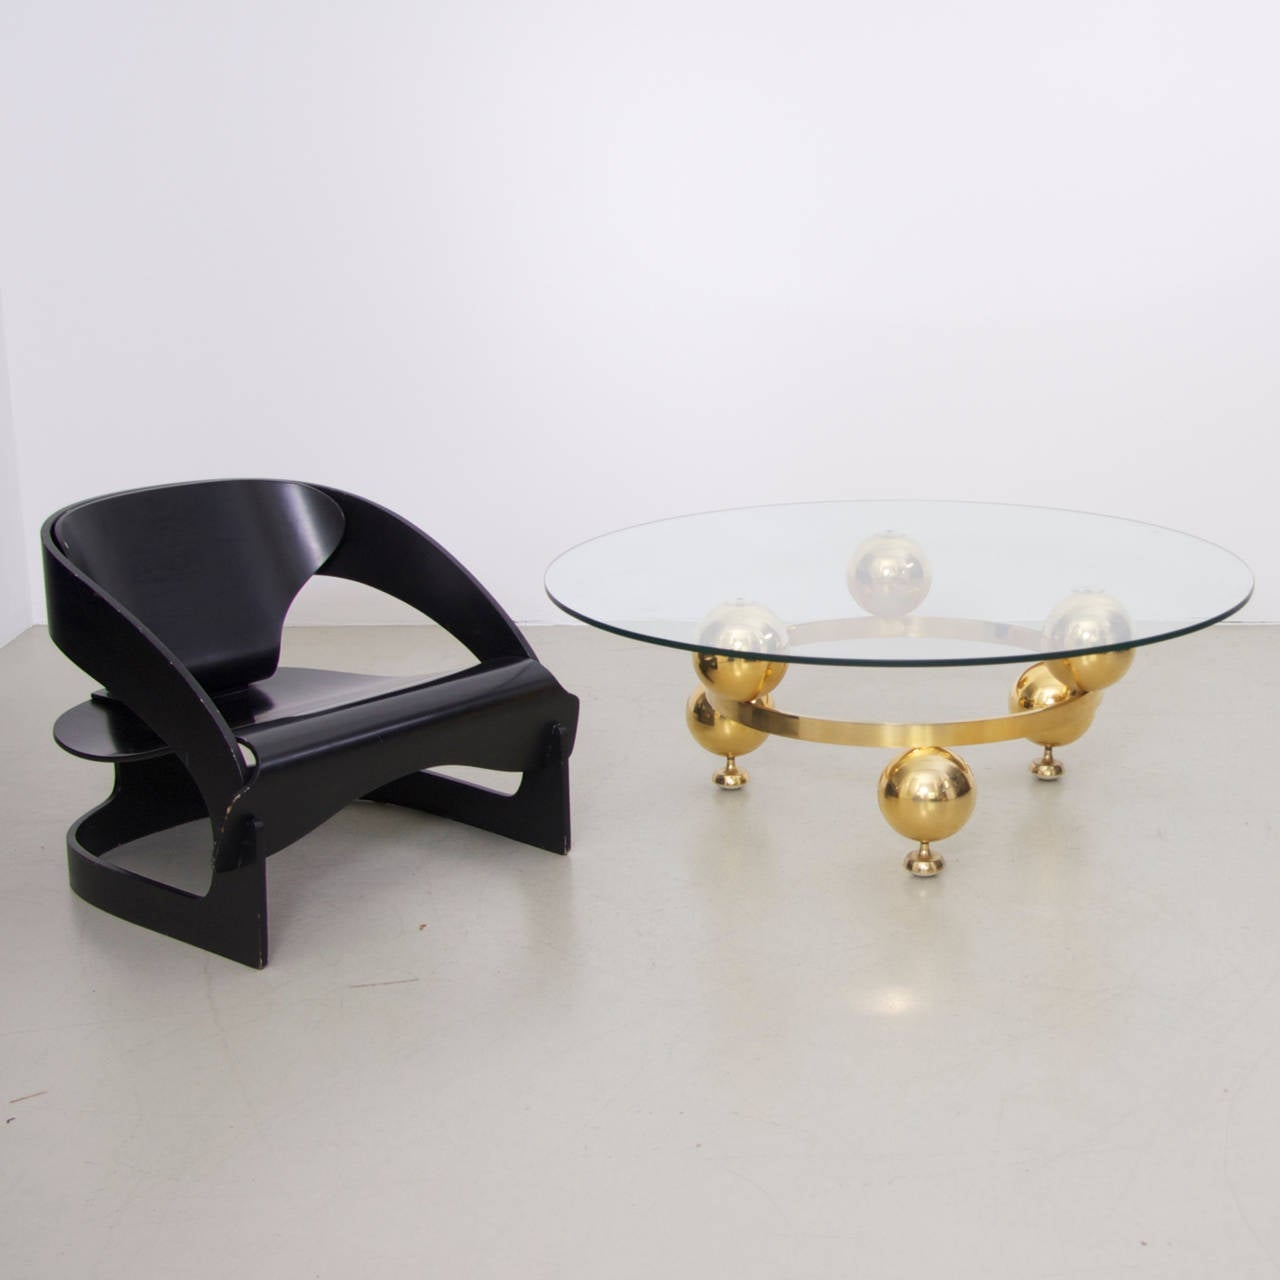 round brass sputnik coffee table with glass top for sale at 1stdibs. Black Bedroom Furniture Sets. Home Design Ideas